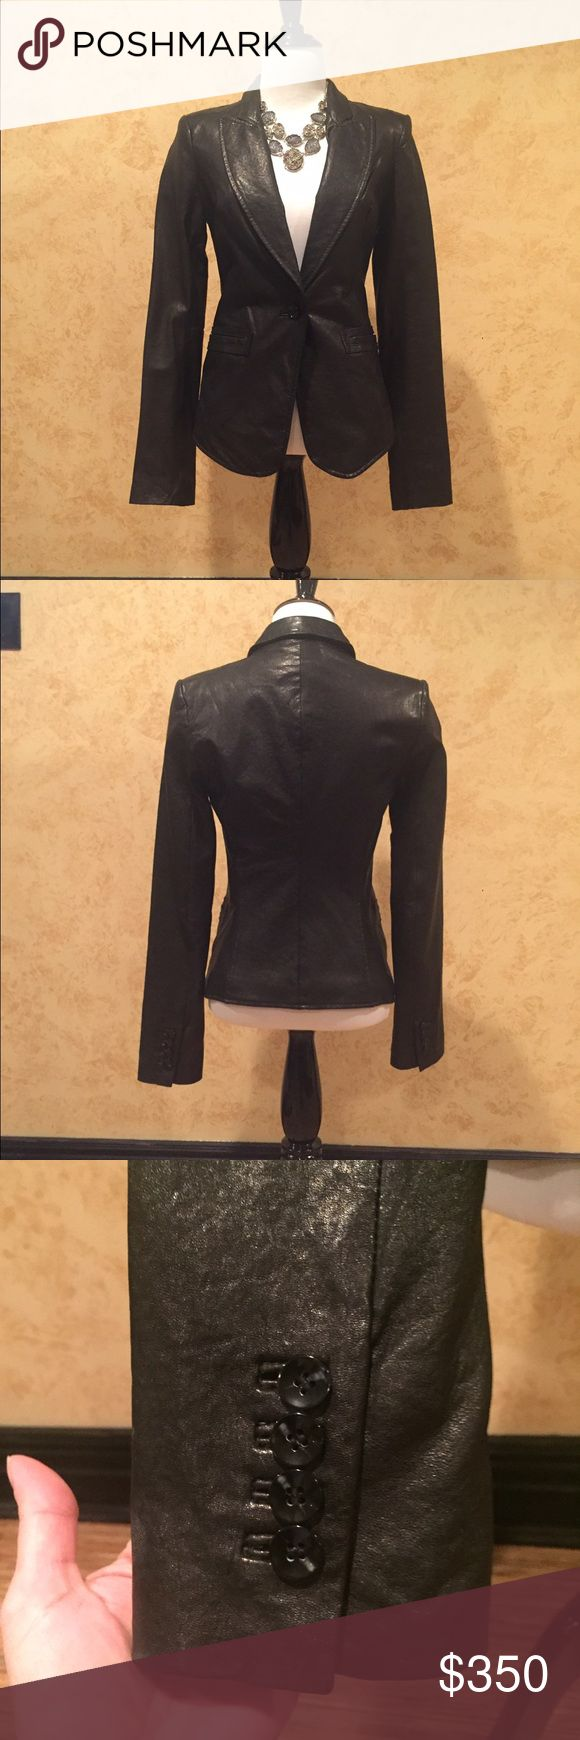 RACHAEL ZOE - Black Leather Blazer NWT, it was always a little tight on me, so I never wore it. My loss, your gain!  💯% genuine leather, w/1 button close, 2 slit pockets, 4 button detail on each sleeve & fully lined. Very sharp looking jacket! Rachel Zoe Jackets & Coats Blazers